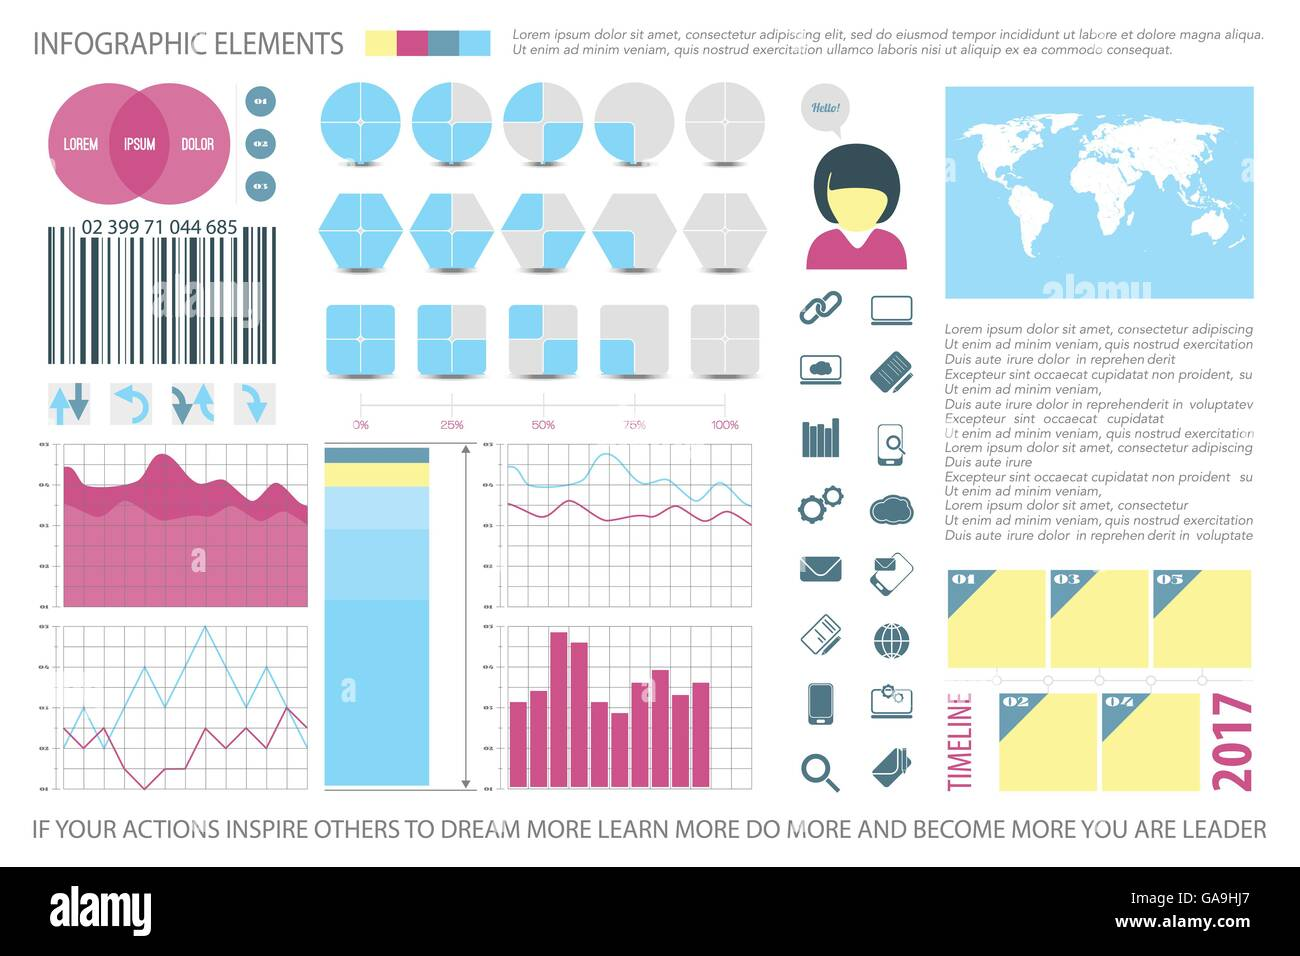 Infographic elements internet technology icons vector time line infographic elements internet technology icons vector time line diagram spreadsheet pie chart info graphic tools financial nvjuhfo Image collections